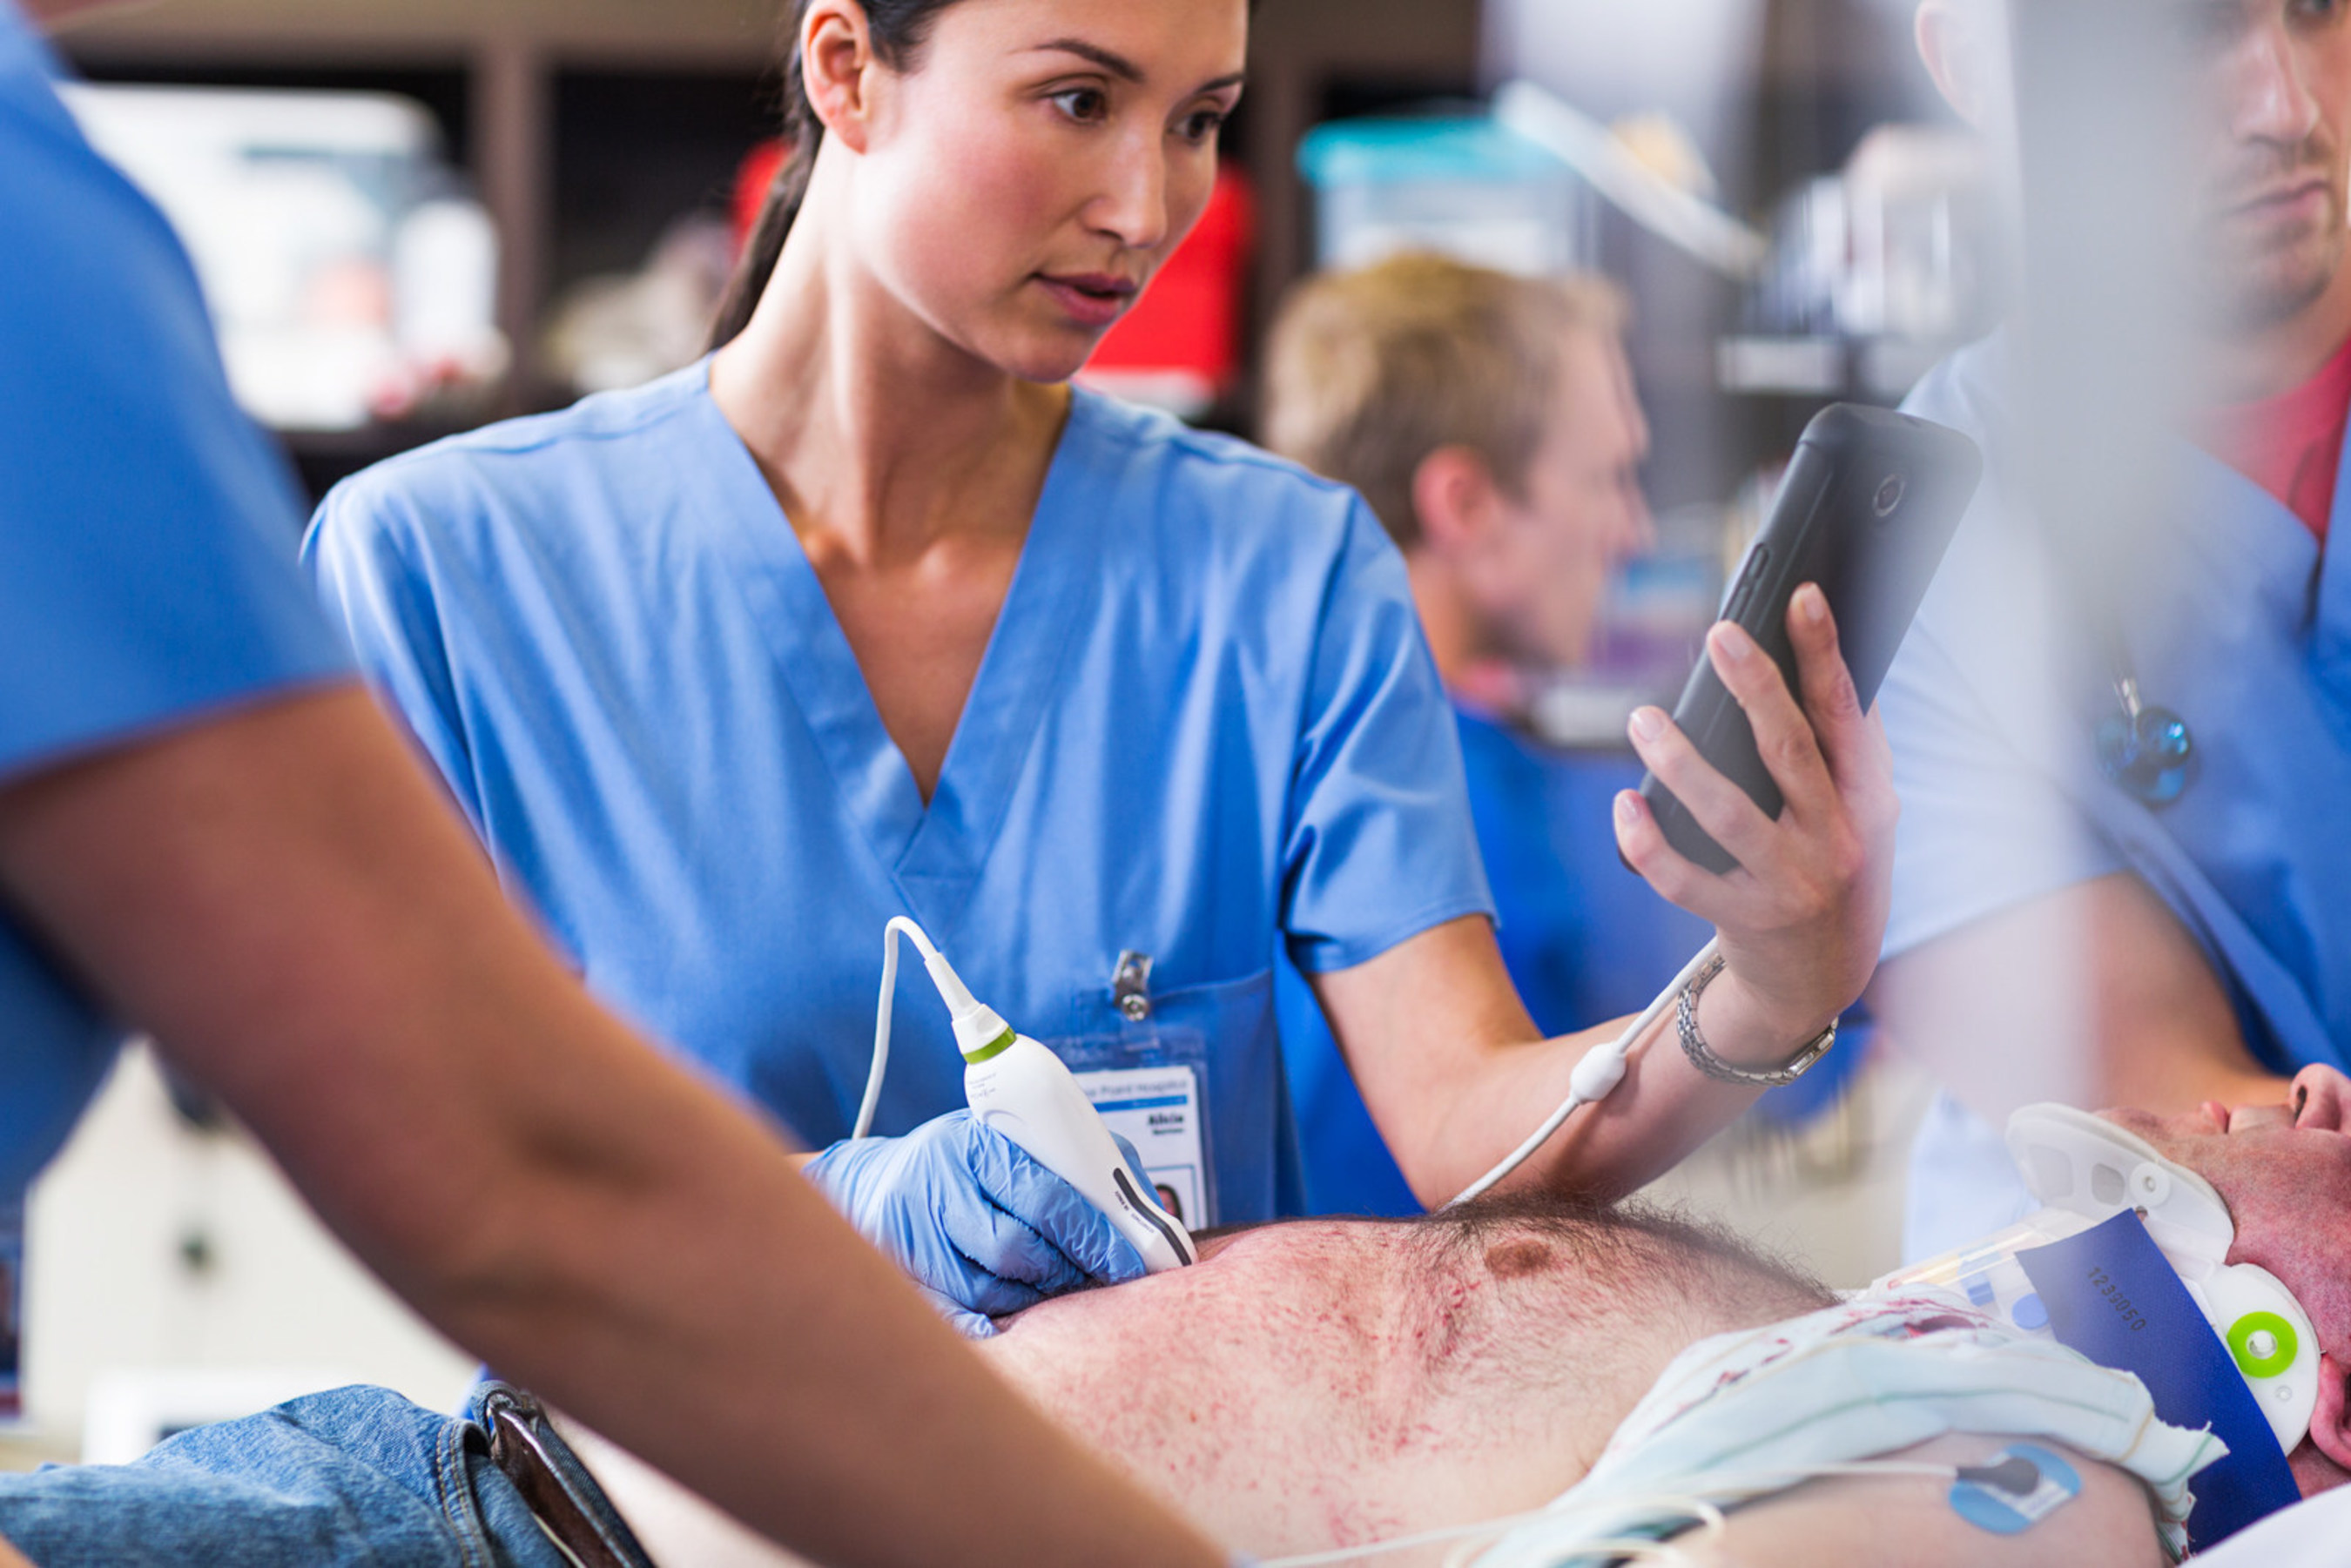 As a customized app-based solution, Lumify offers healthcare professionals connectivity, flexibility and mobility.